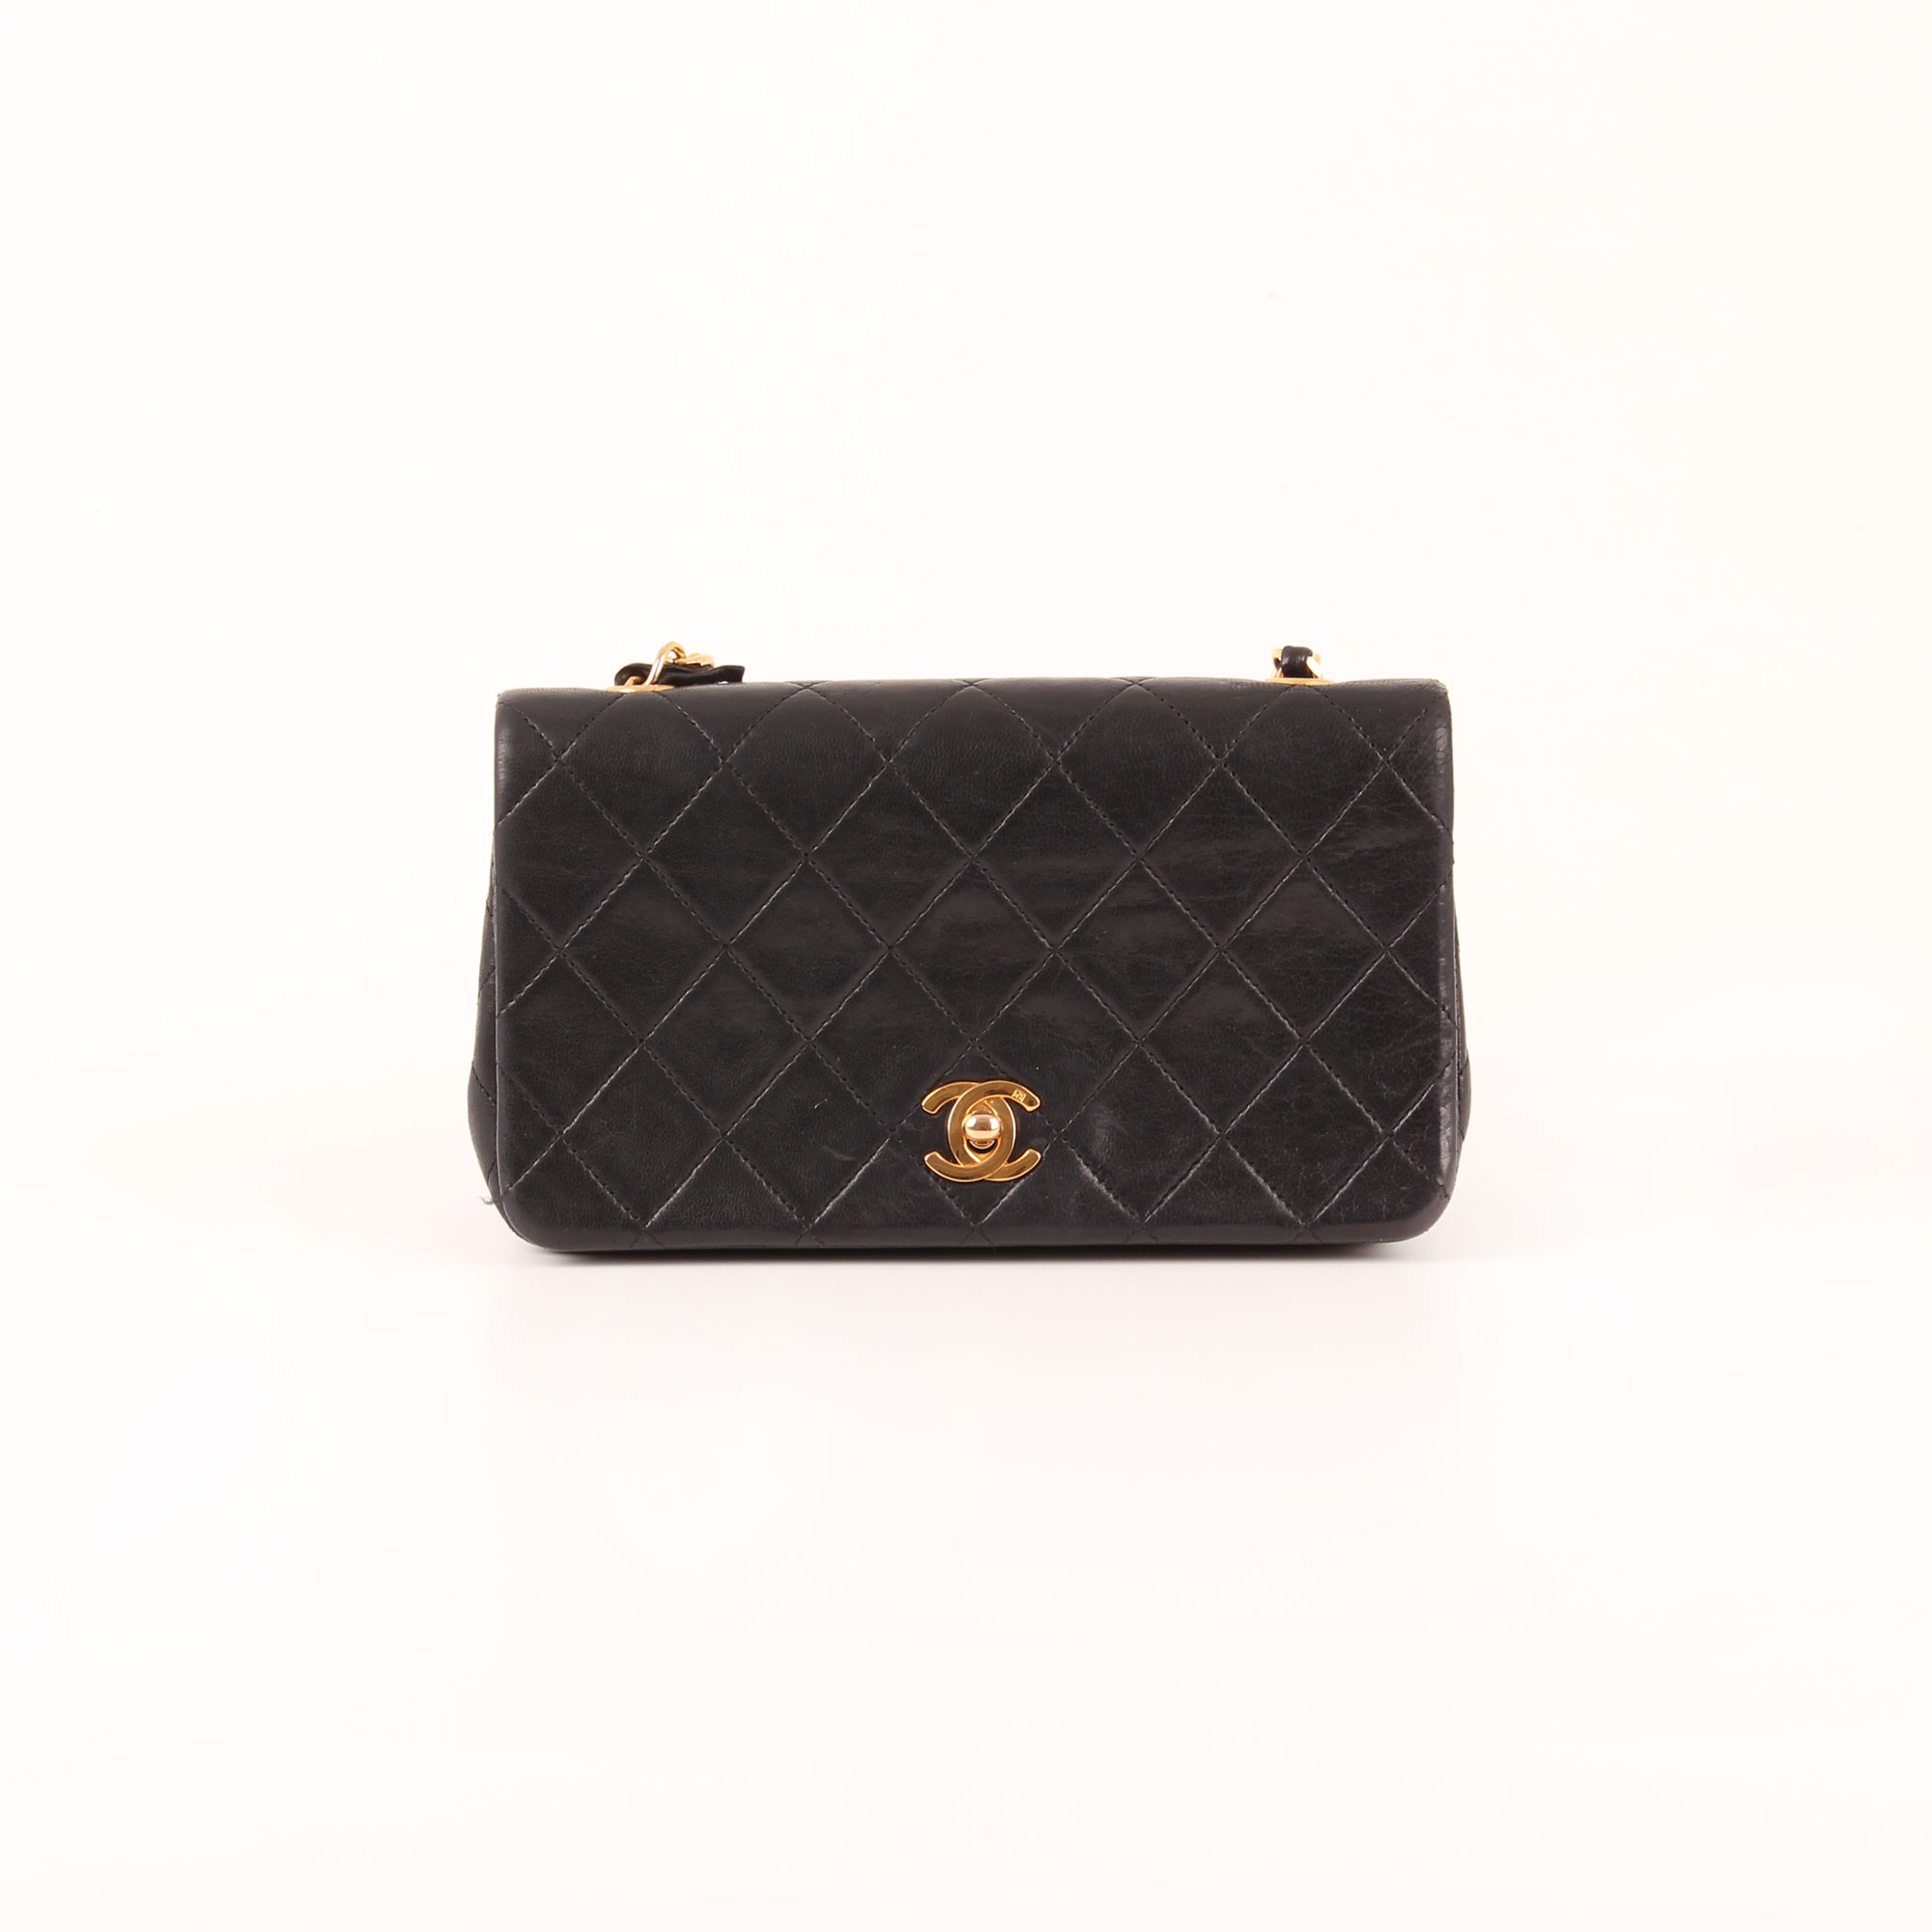 a8123a8586 Front image Chanel timeless vintage flap bag in leather lambskin